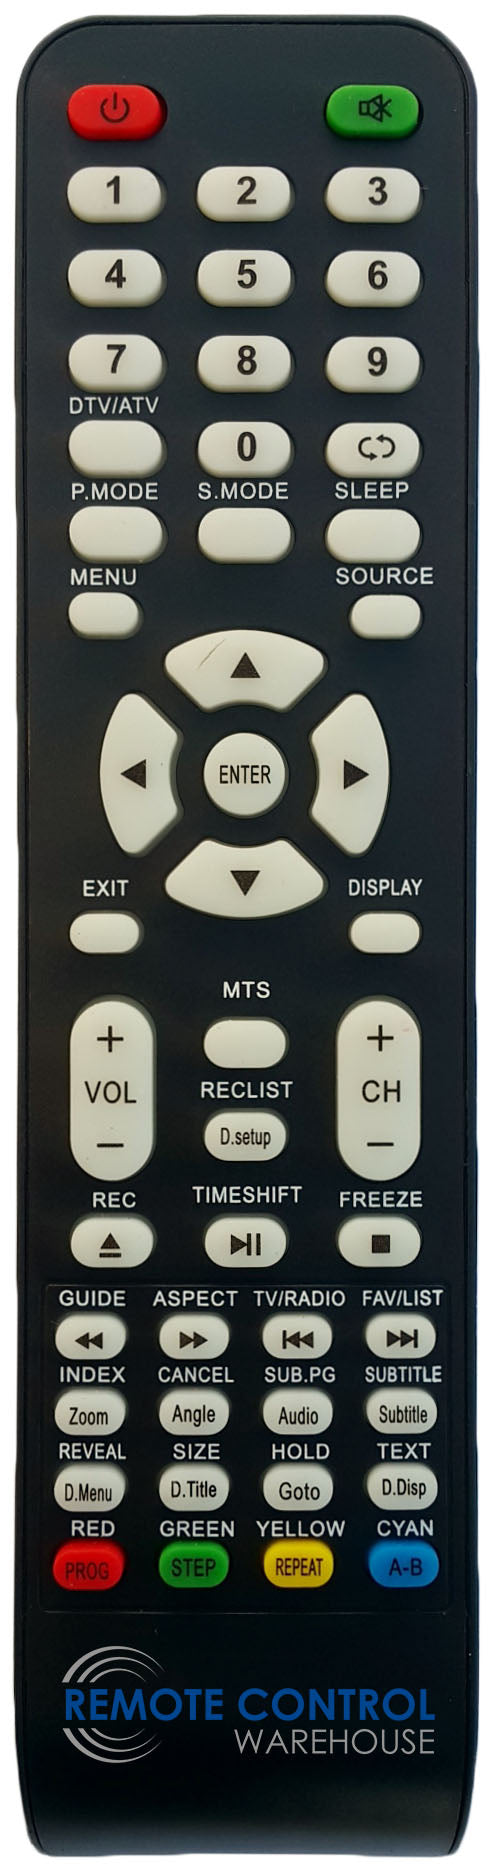 REPLACEMENT CONIA REMOTE CONTROL - CE2202FHDVDR  LED (blacklight) TV - Remote Control Warehouse